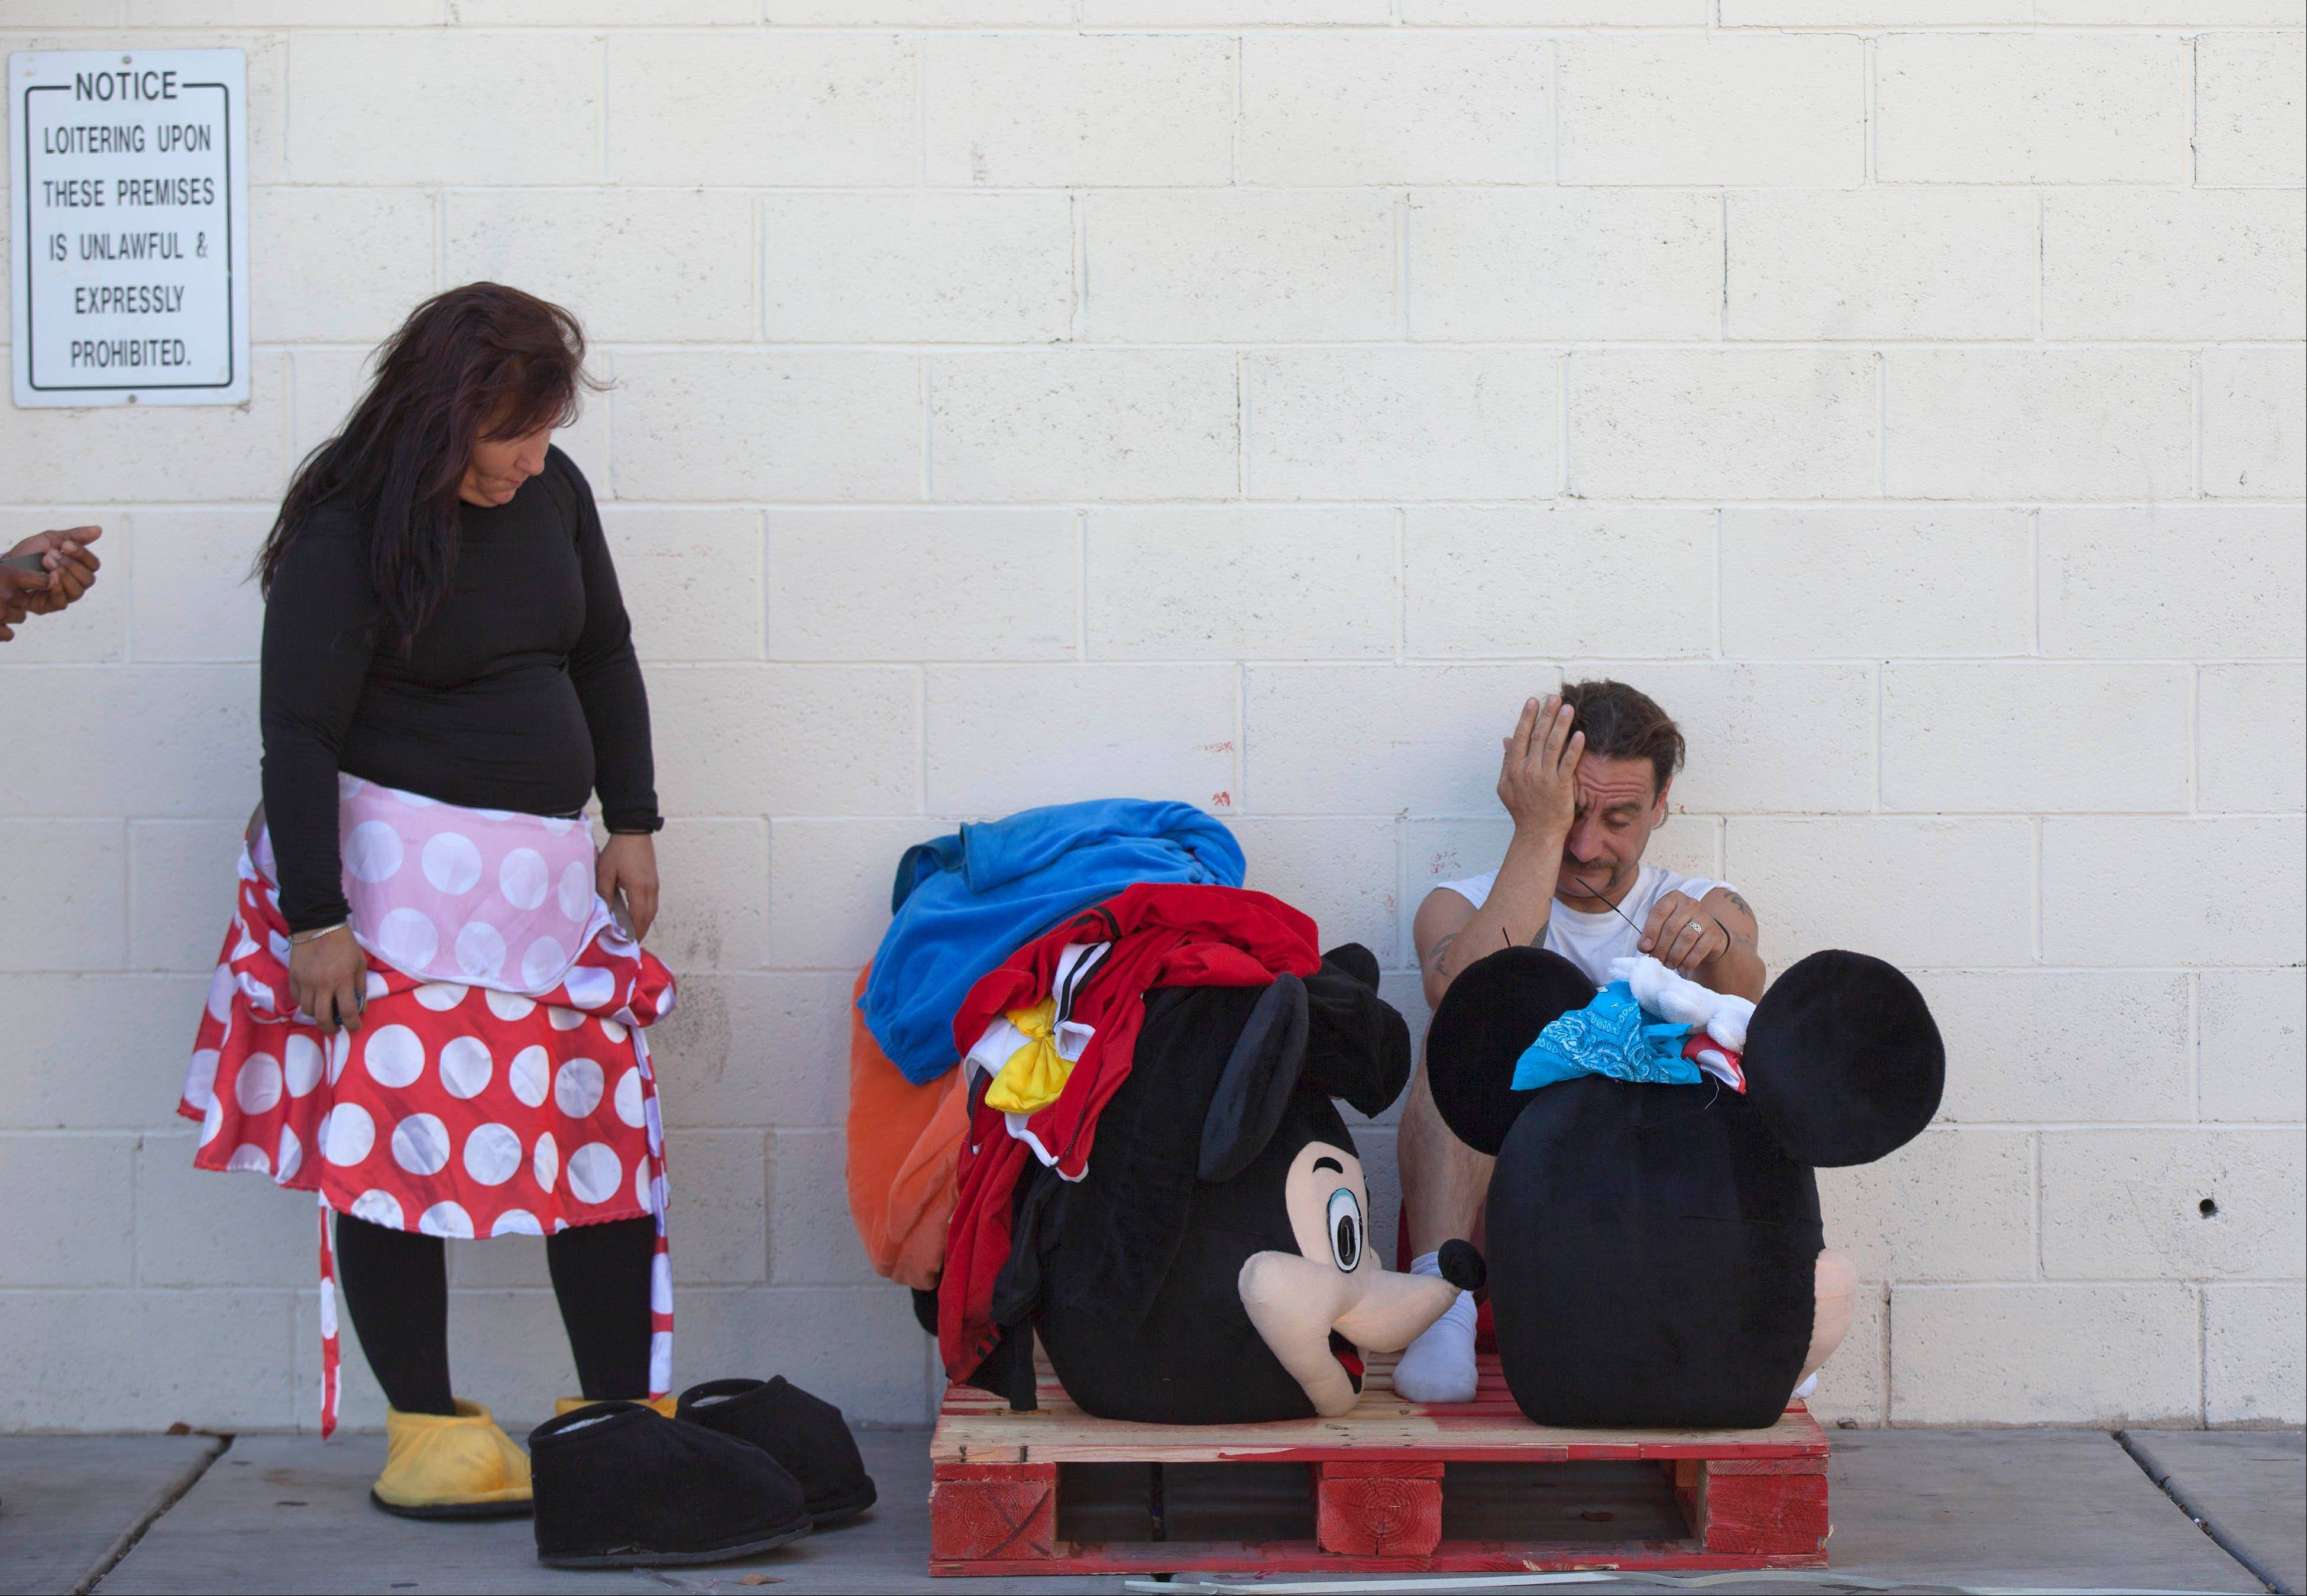 Robyn Vanderlip, left, and James Miller take a break behind a restaurant along The Strip after several hours of posing as Minnie and Mickey Mouse for tips from Las Vegas tourists in June.